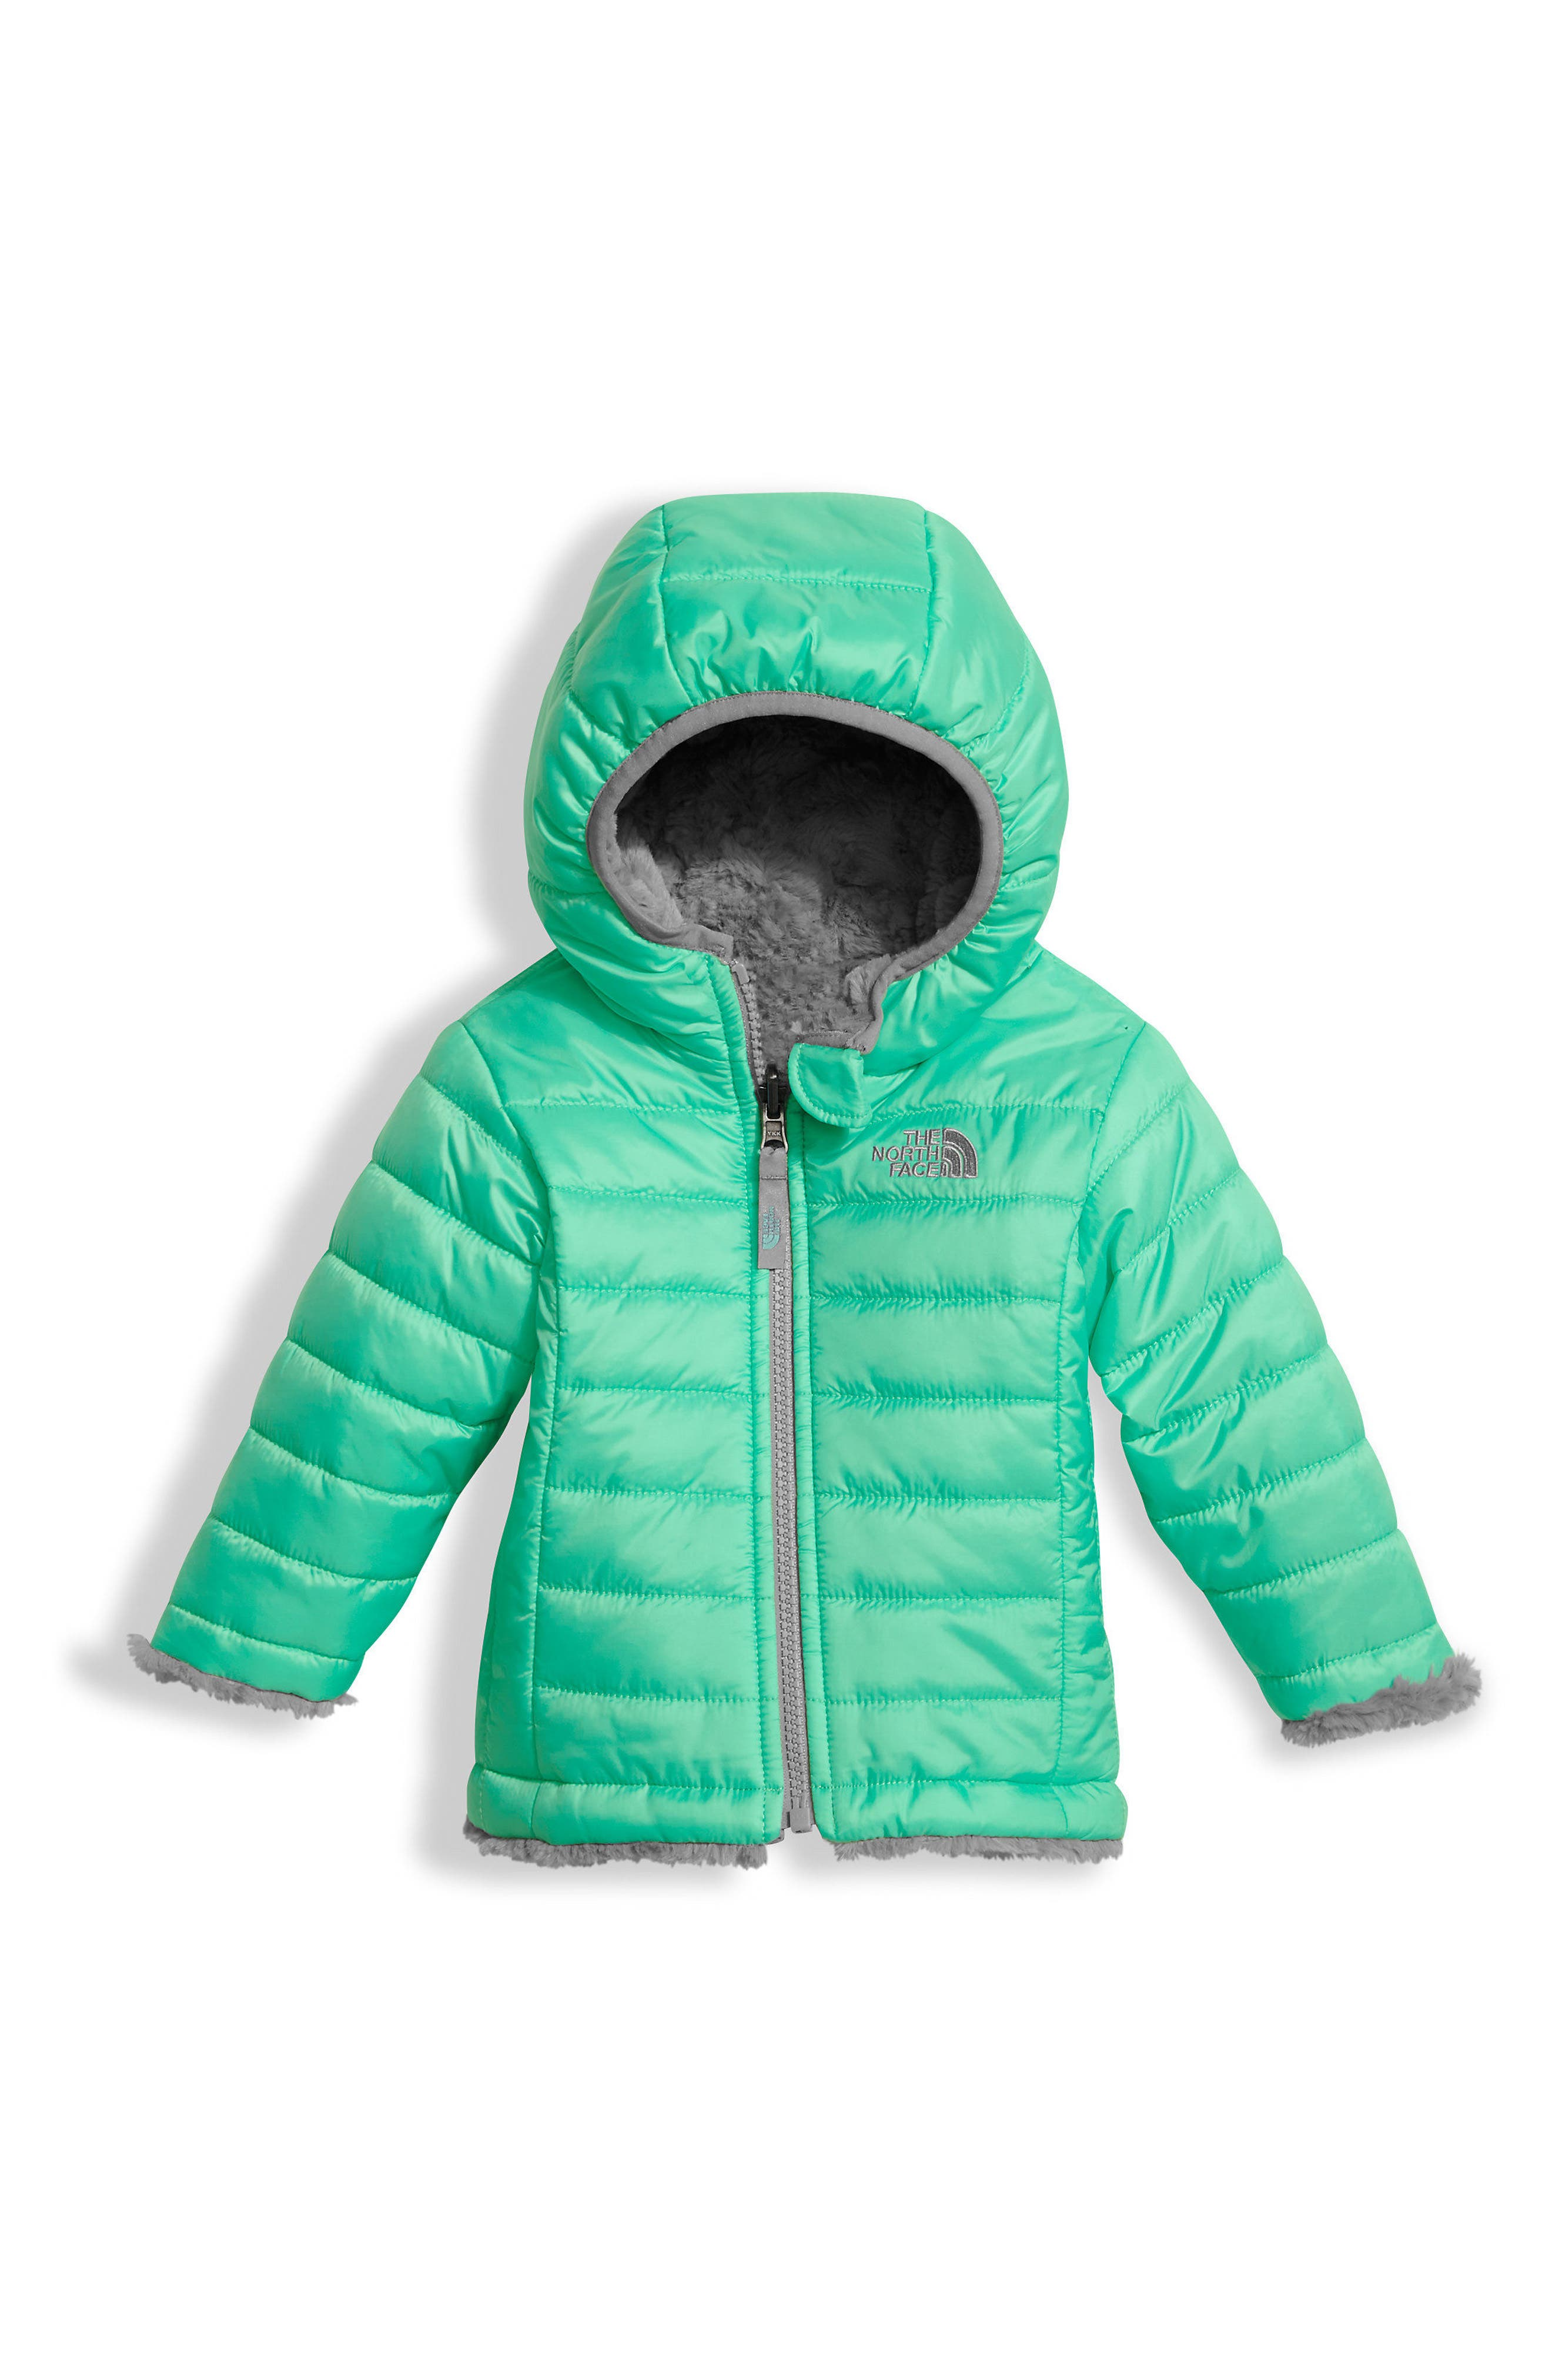 'Mossbud' Reversible Water Repellent Jacket,                             Main thumbnail 1, color,                             310